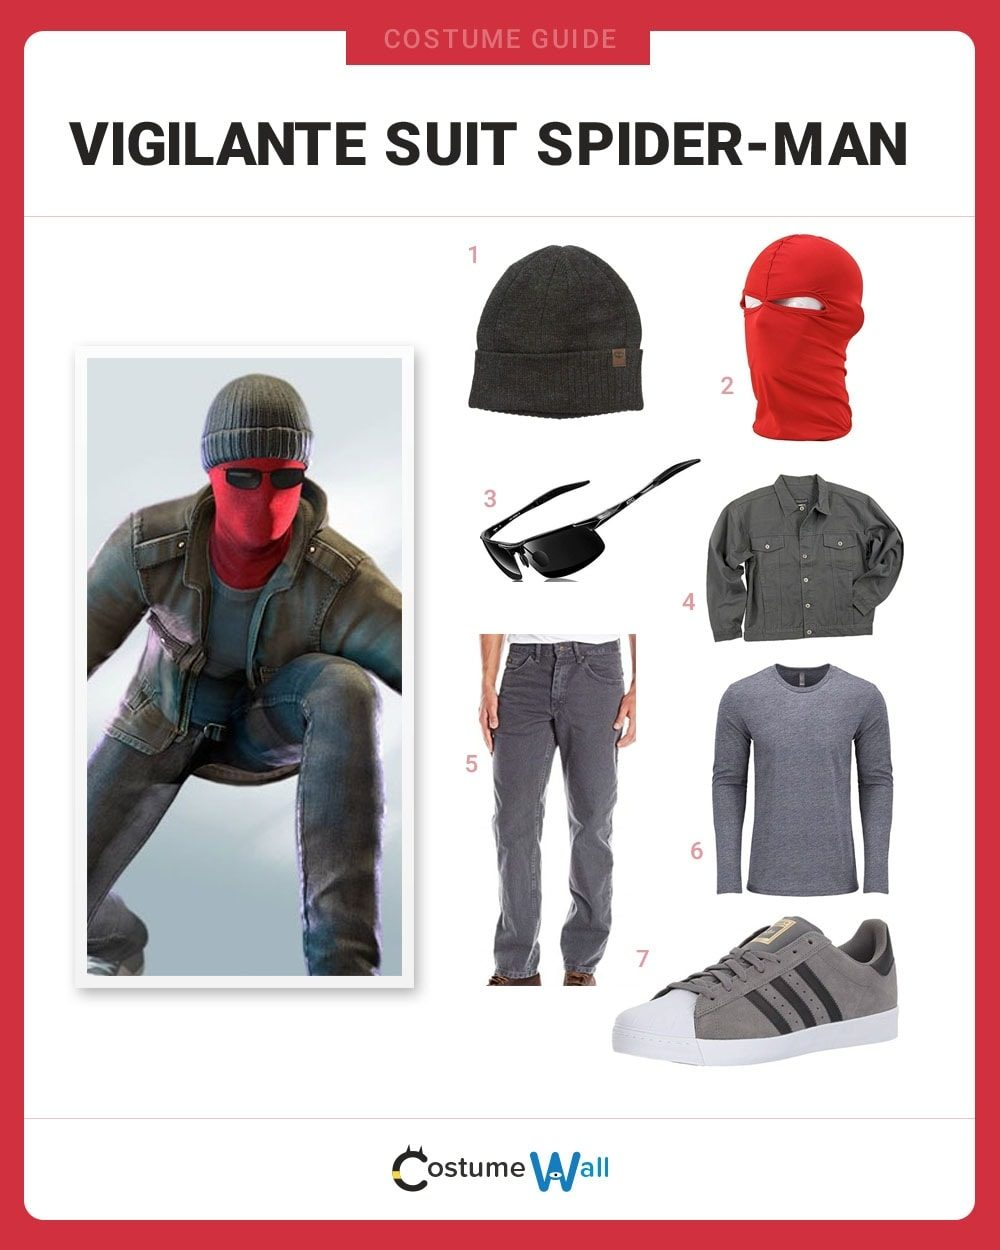 Vigilante Suit Spider-Man Costume Guide